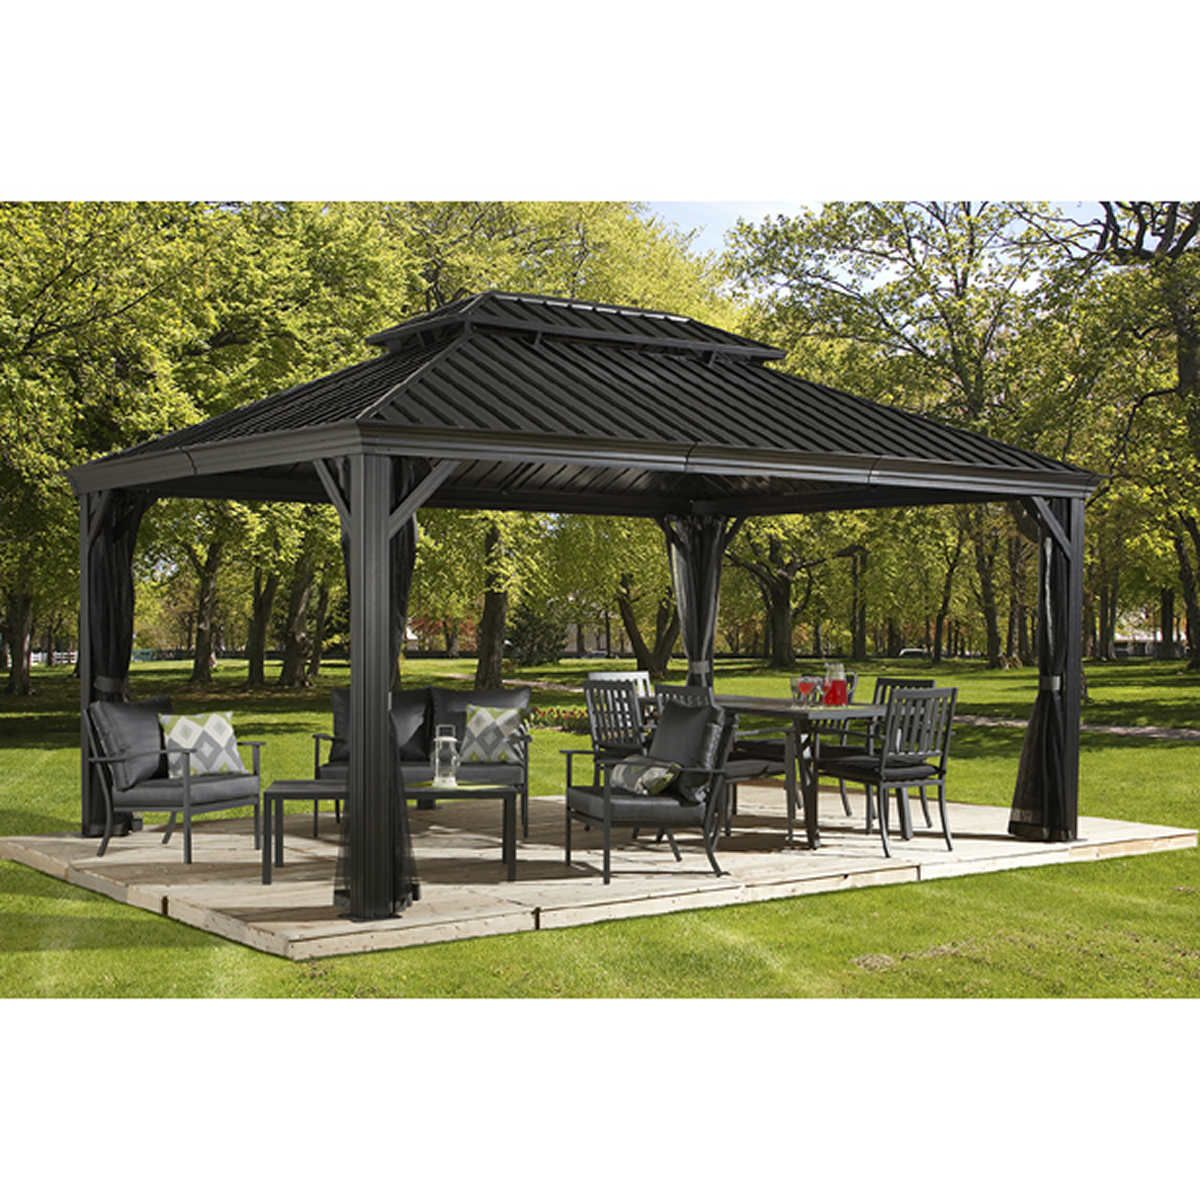 Messina Galvanized Steel Roof Sun Shelter In Dark Gray Hardtop Gazebo Patio Gazebo Pergola Patio